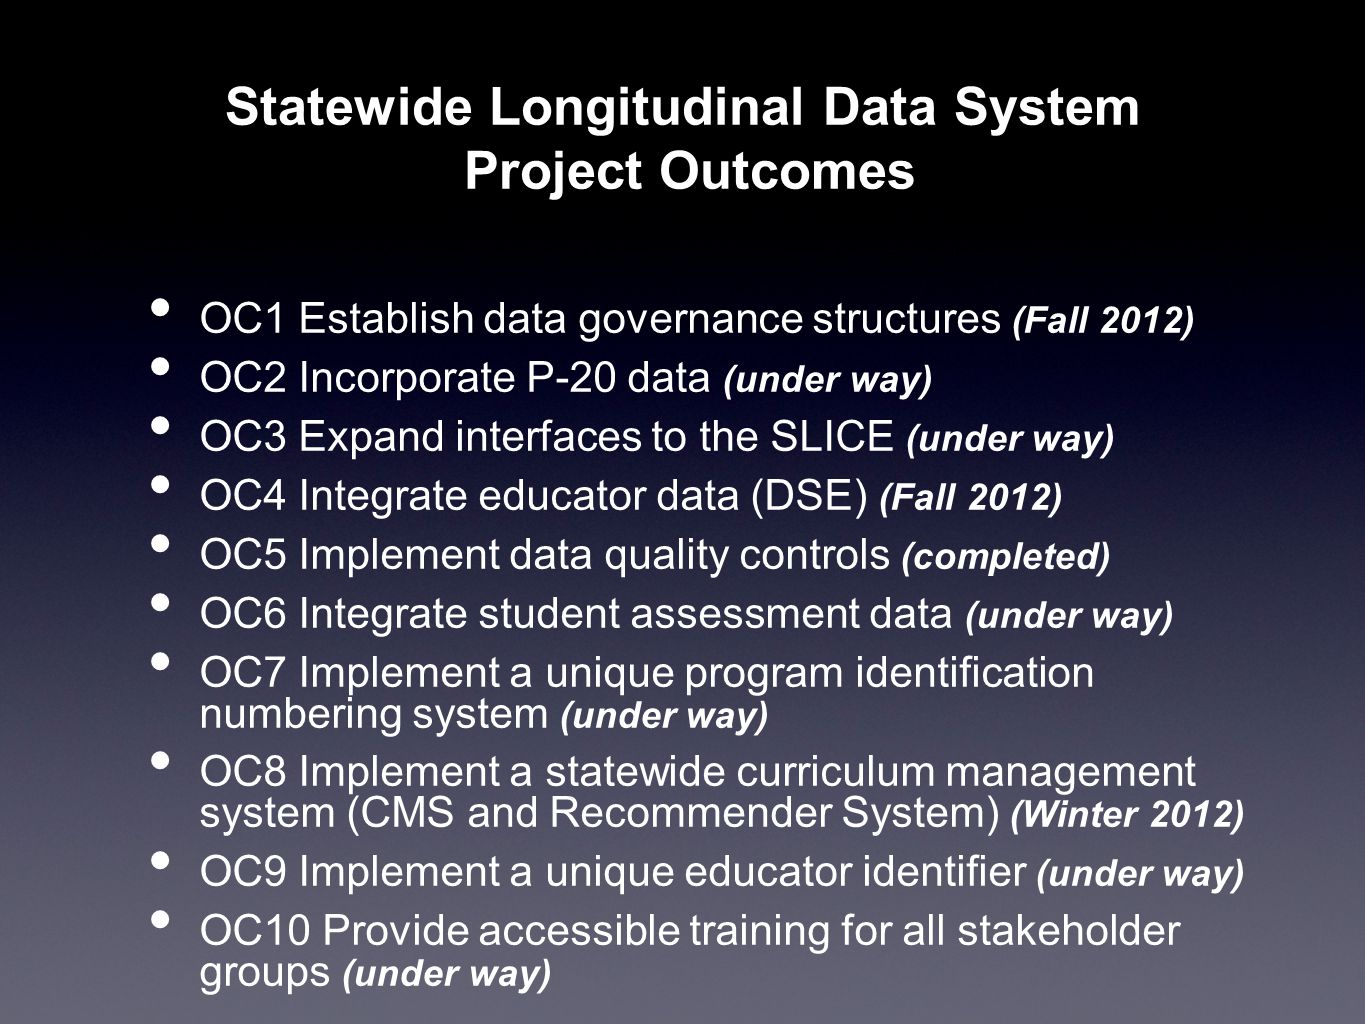 OC1 Establish data governance structures (Fall 2012) OC2 Incorporate P-20 data (under way) OC3 Expand interfaces to the SLICE (under way) OC4 Integrate educator data (DSE) (Fall 2012) OC5 Implement data quality controls (completed) OC6 Integrate student assessment data (under way) OC7 Implement a unique program identification numbering system (under way) OC8 Implement a statewide curriculum management system (CMS and Recommender System) (Winter 2012) OC9 Implement a unique educator identifier (under way) OC10 Provide accessible training for all stakeholder groups (under way) Statewide Longitudinal Data System Project Outcomes